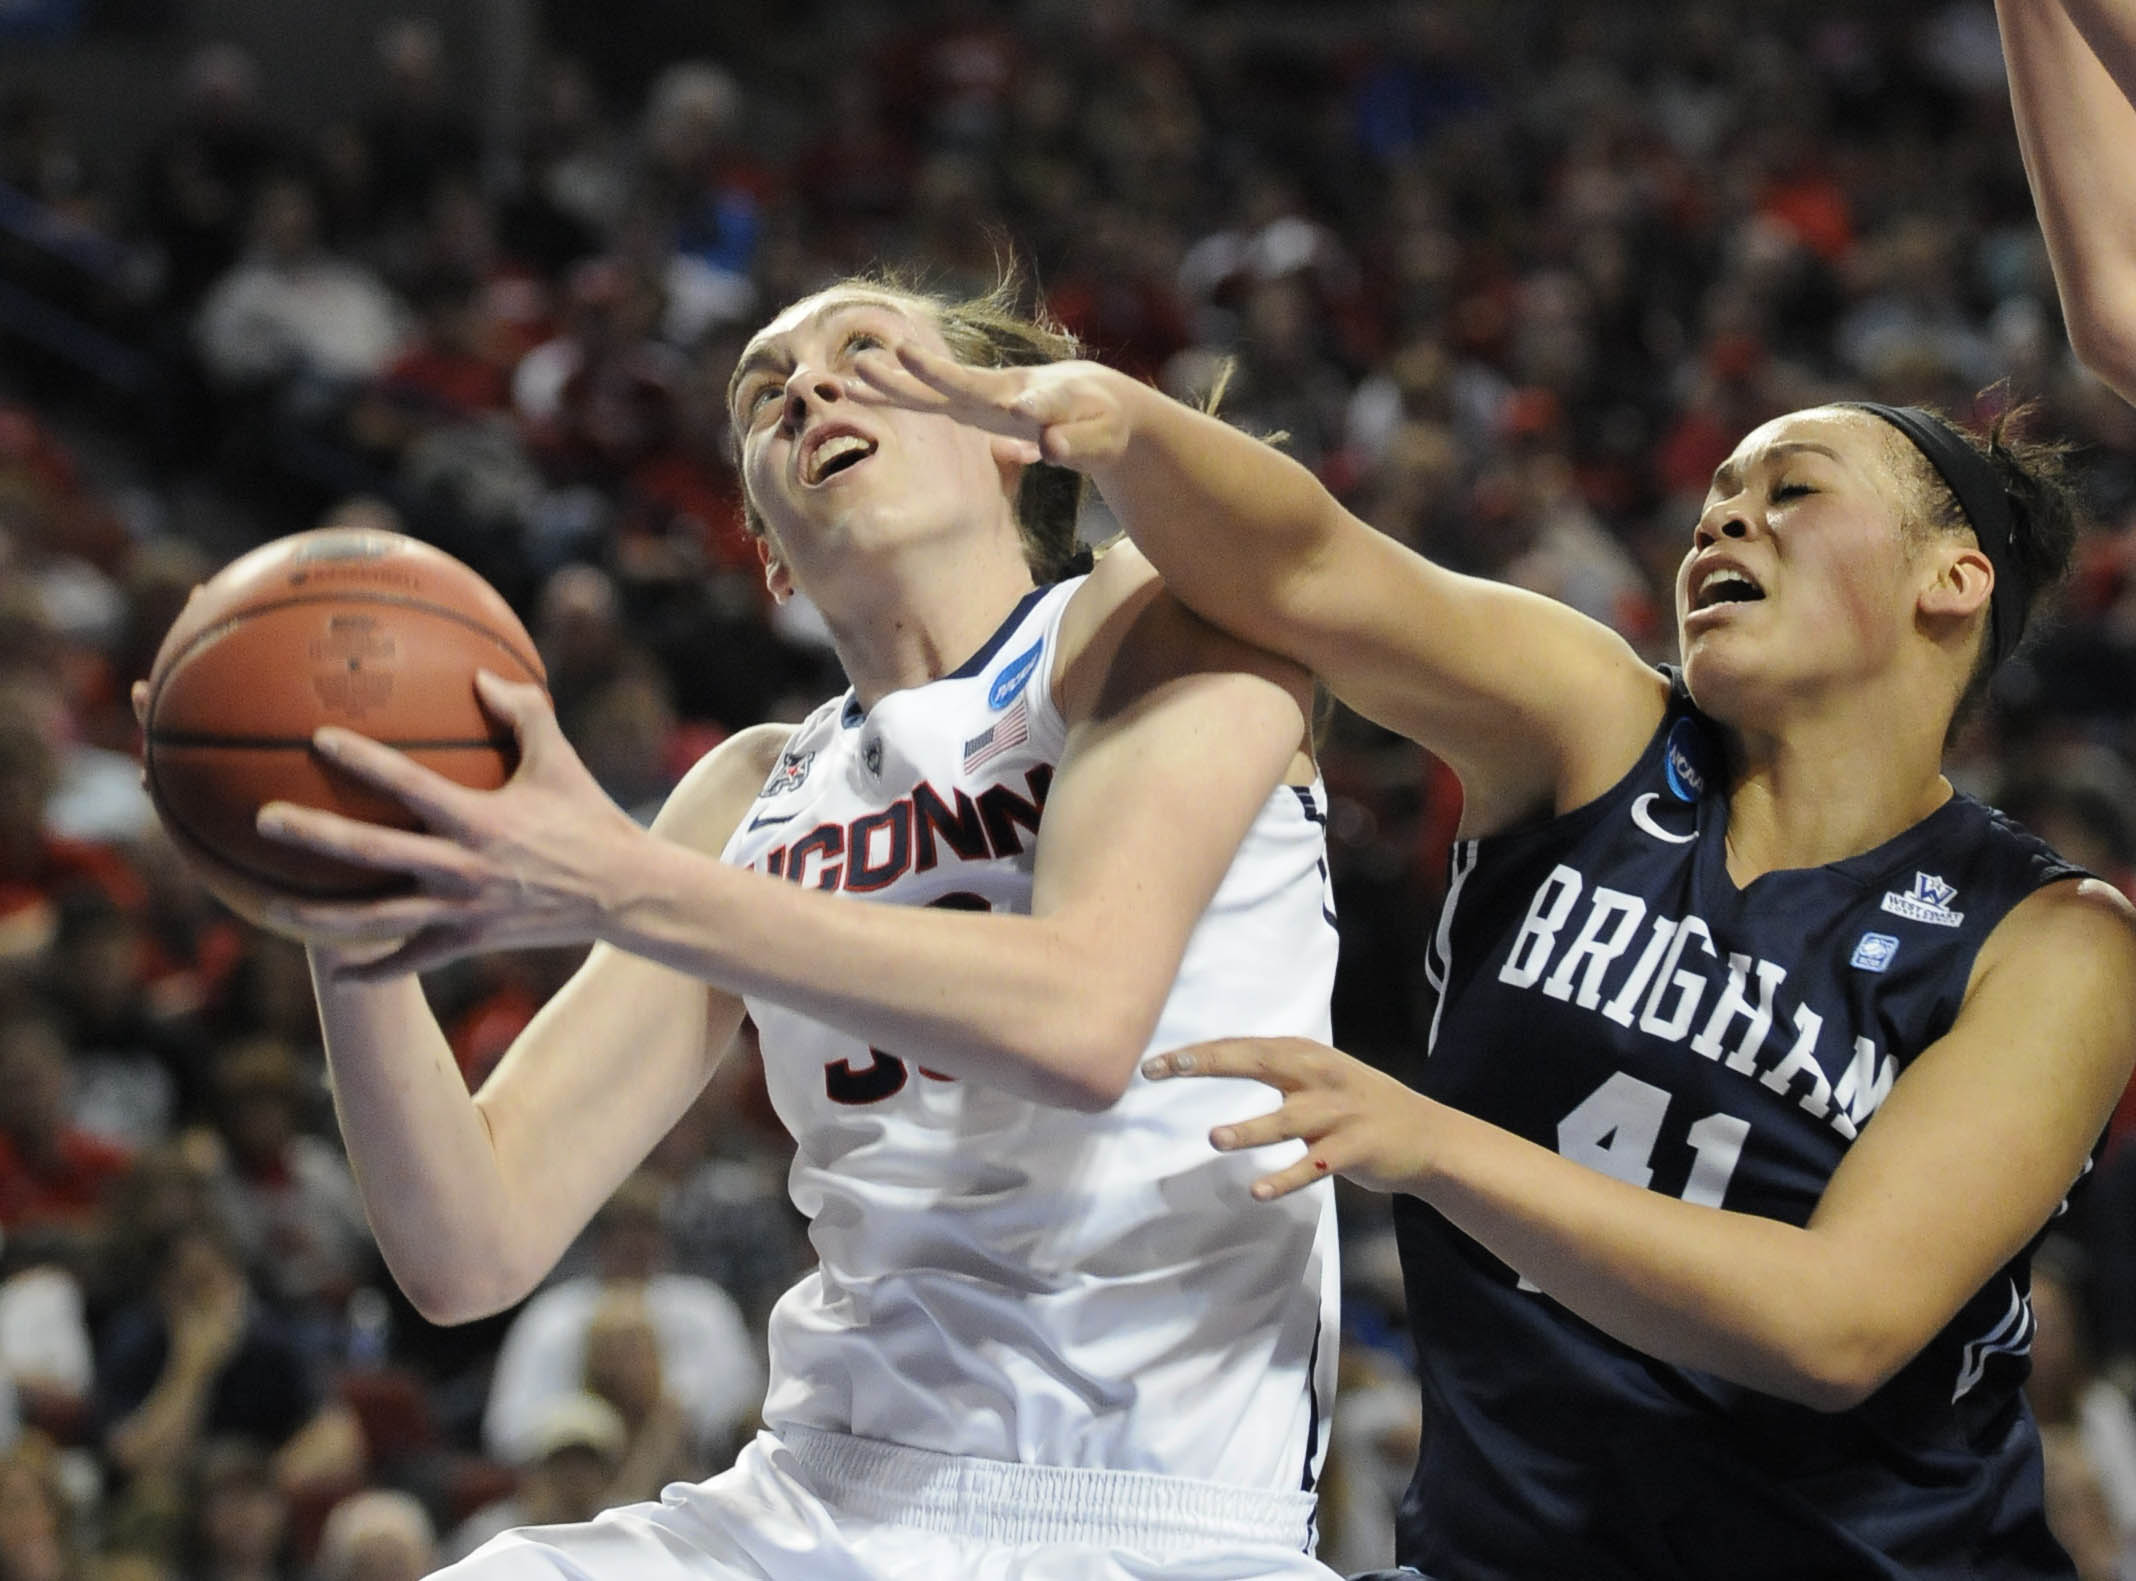 LINCOLN, NE 03/28/14 UConn Huskies forward Breanna Stewart (30) is defended by Brigham Young Cougars forward Morgan Bailey (41) in the first half of an NCAA Sweet Sixteen game at the Pinnacle Bank Arena Saturday.  CLOE POISSON|cpoisson@courant.com